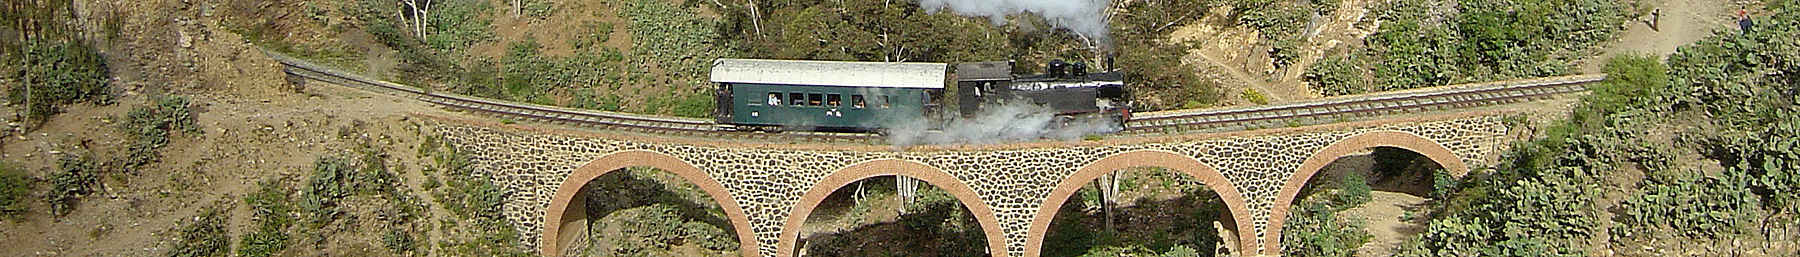 Eritrea banner Eritrean railway bridge.jpg